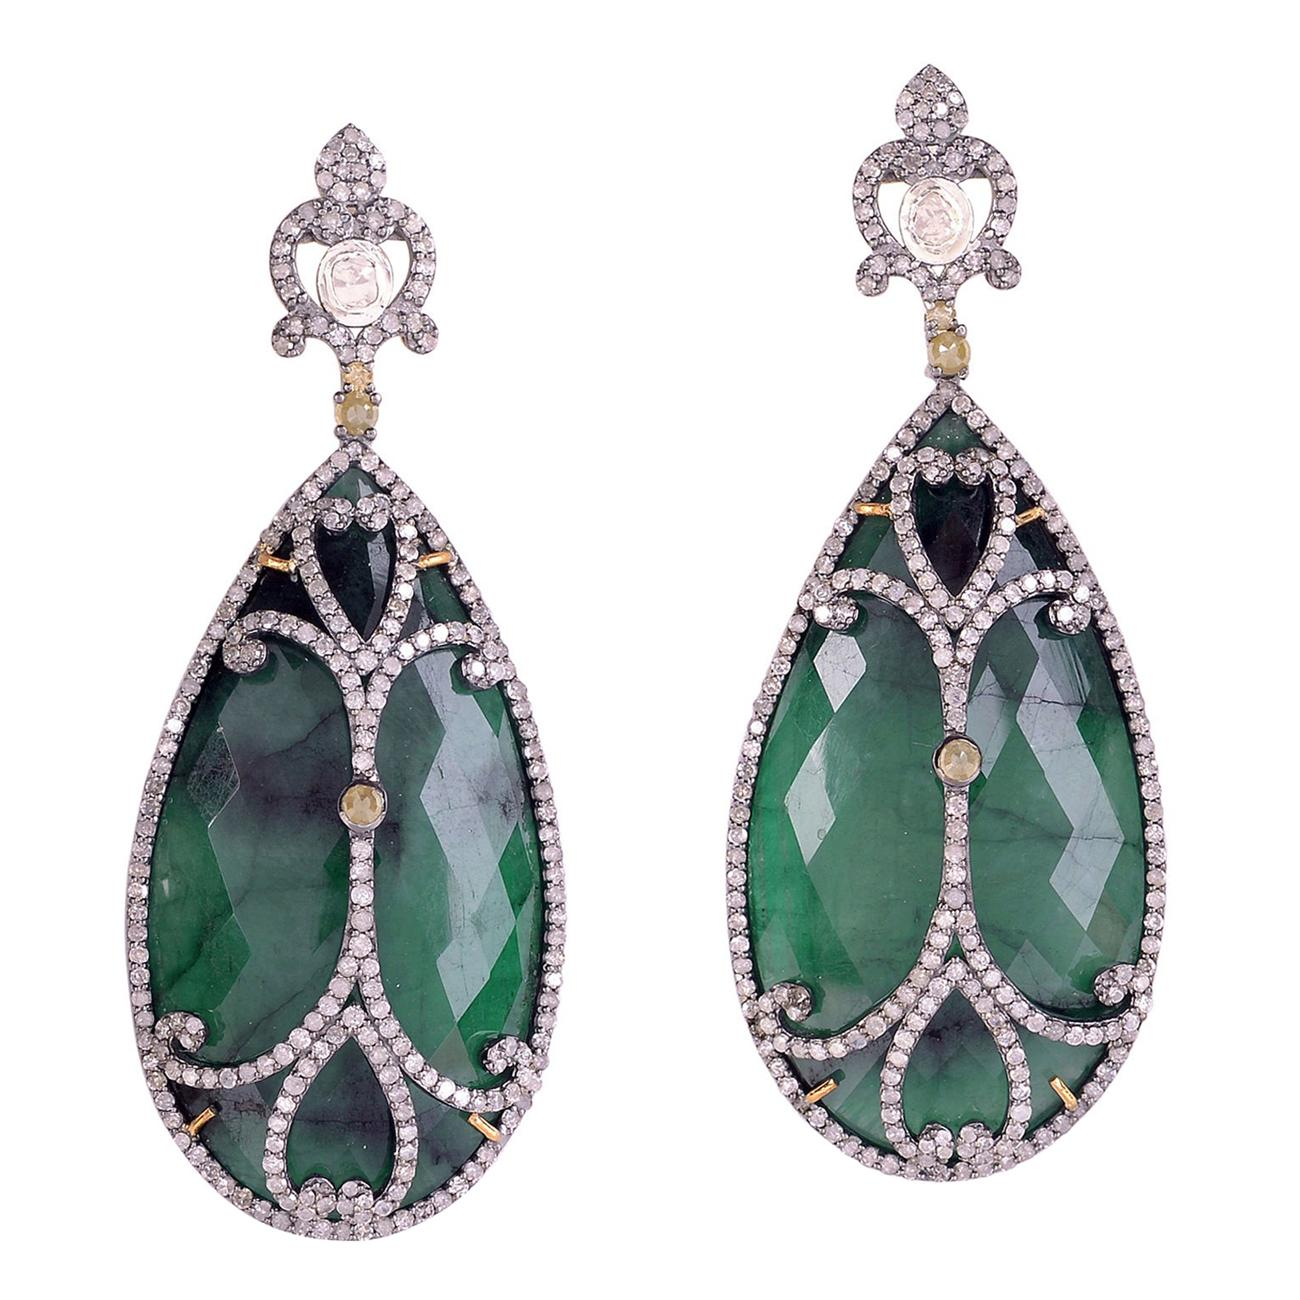 Designer Diamond and Slice Emerald Dangle Earring in Gold and Silver